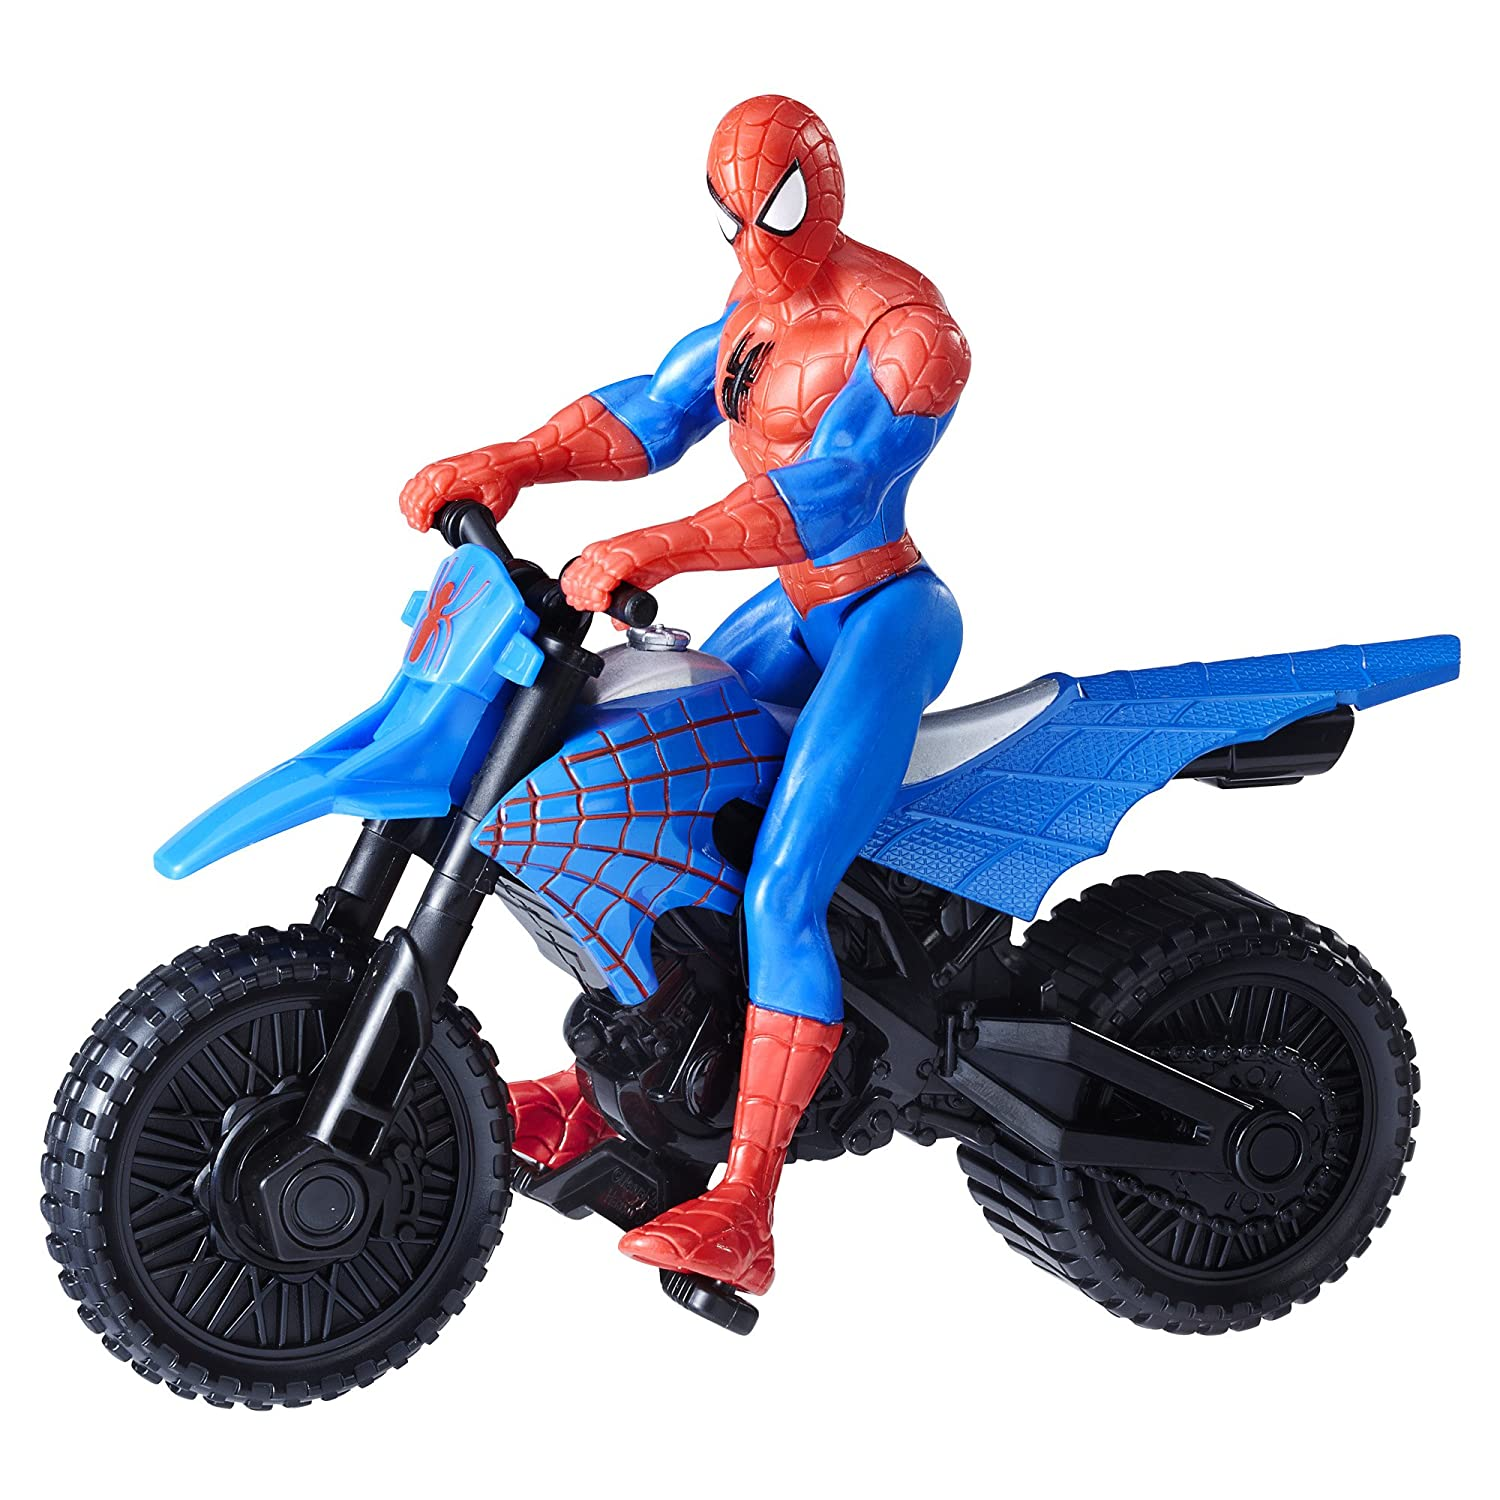 Marvel Spider-Man with Supercross Cycle Hasbro B9706